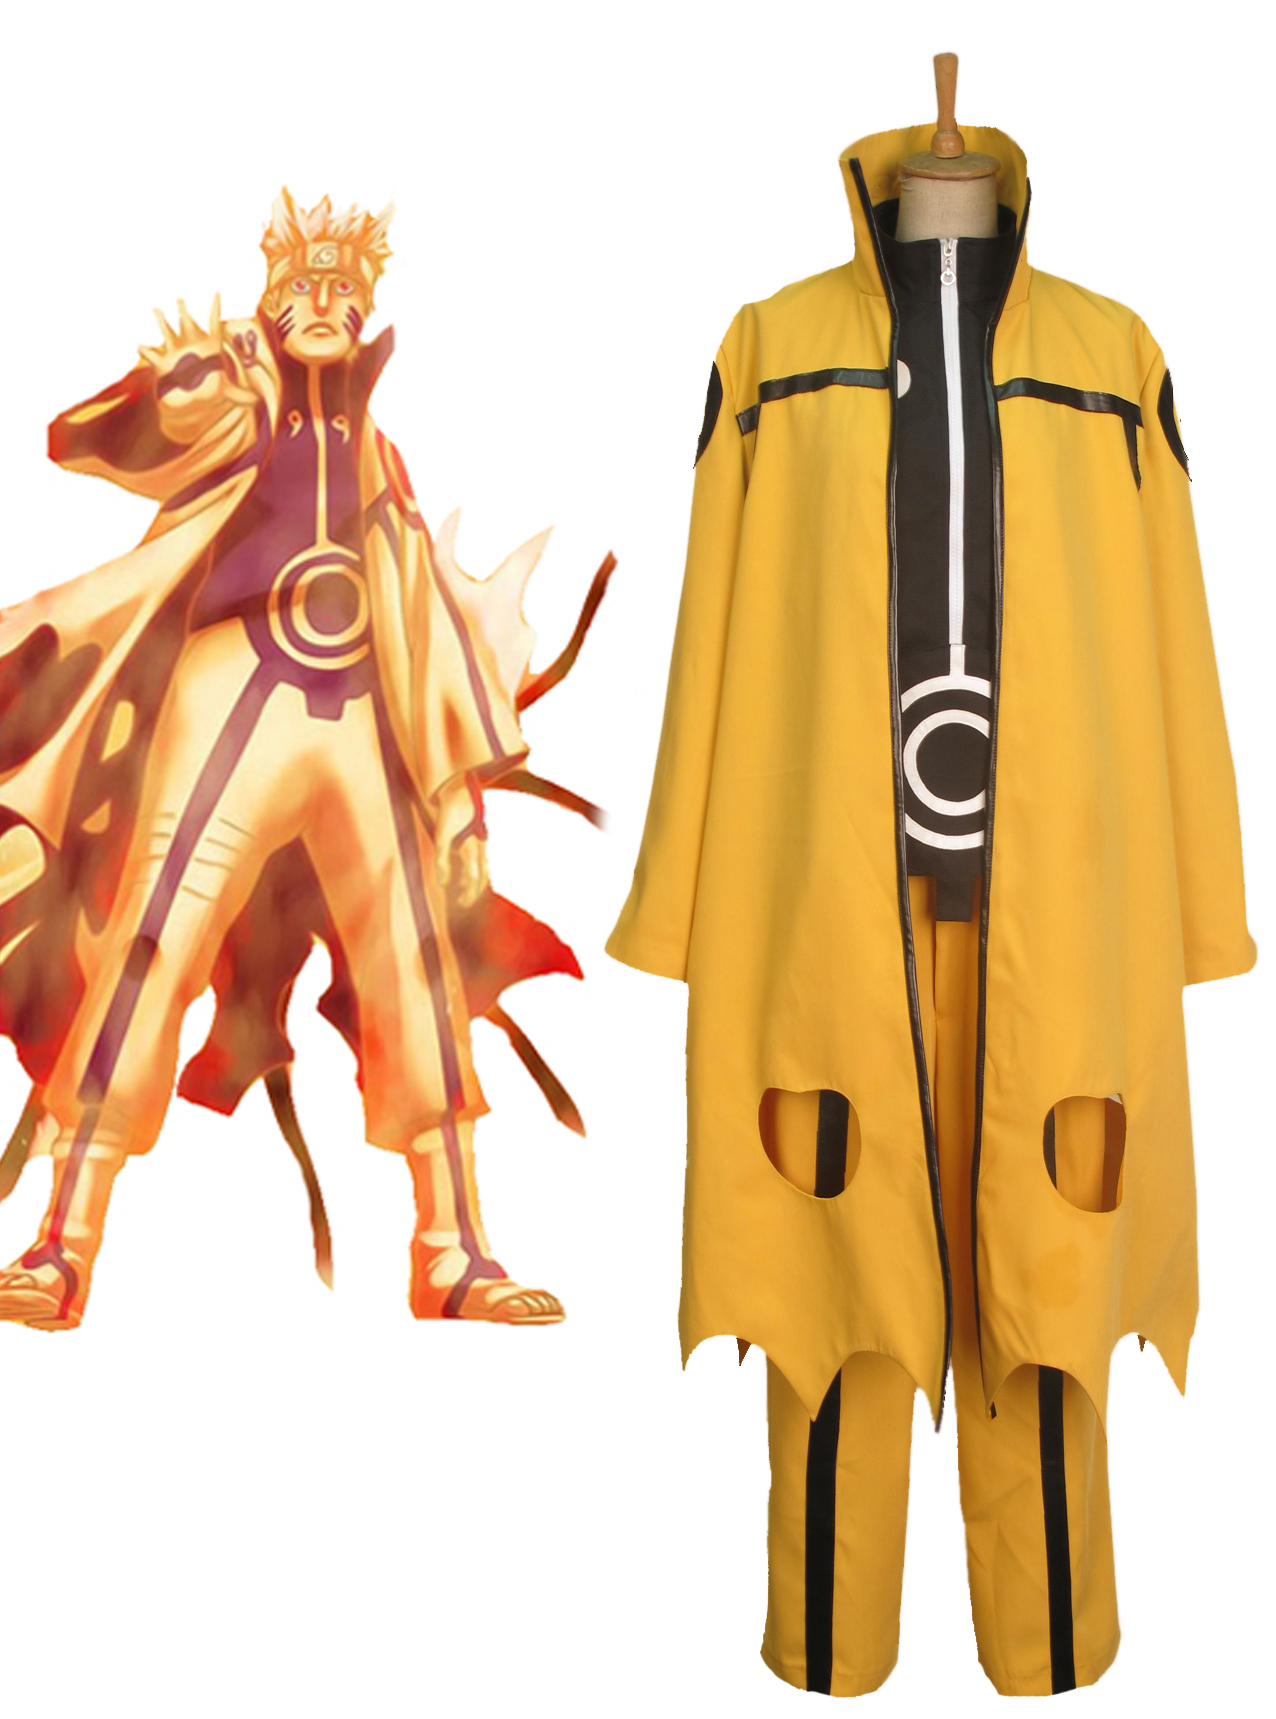 229 2292329 naruto nine tails mode cosplay